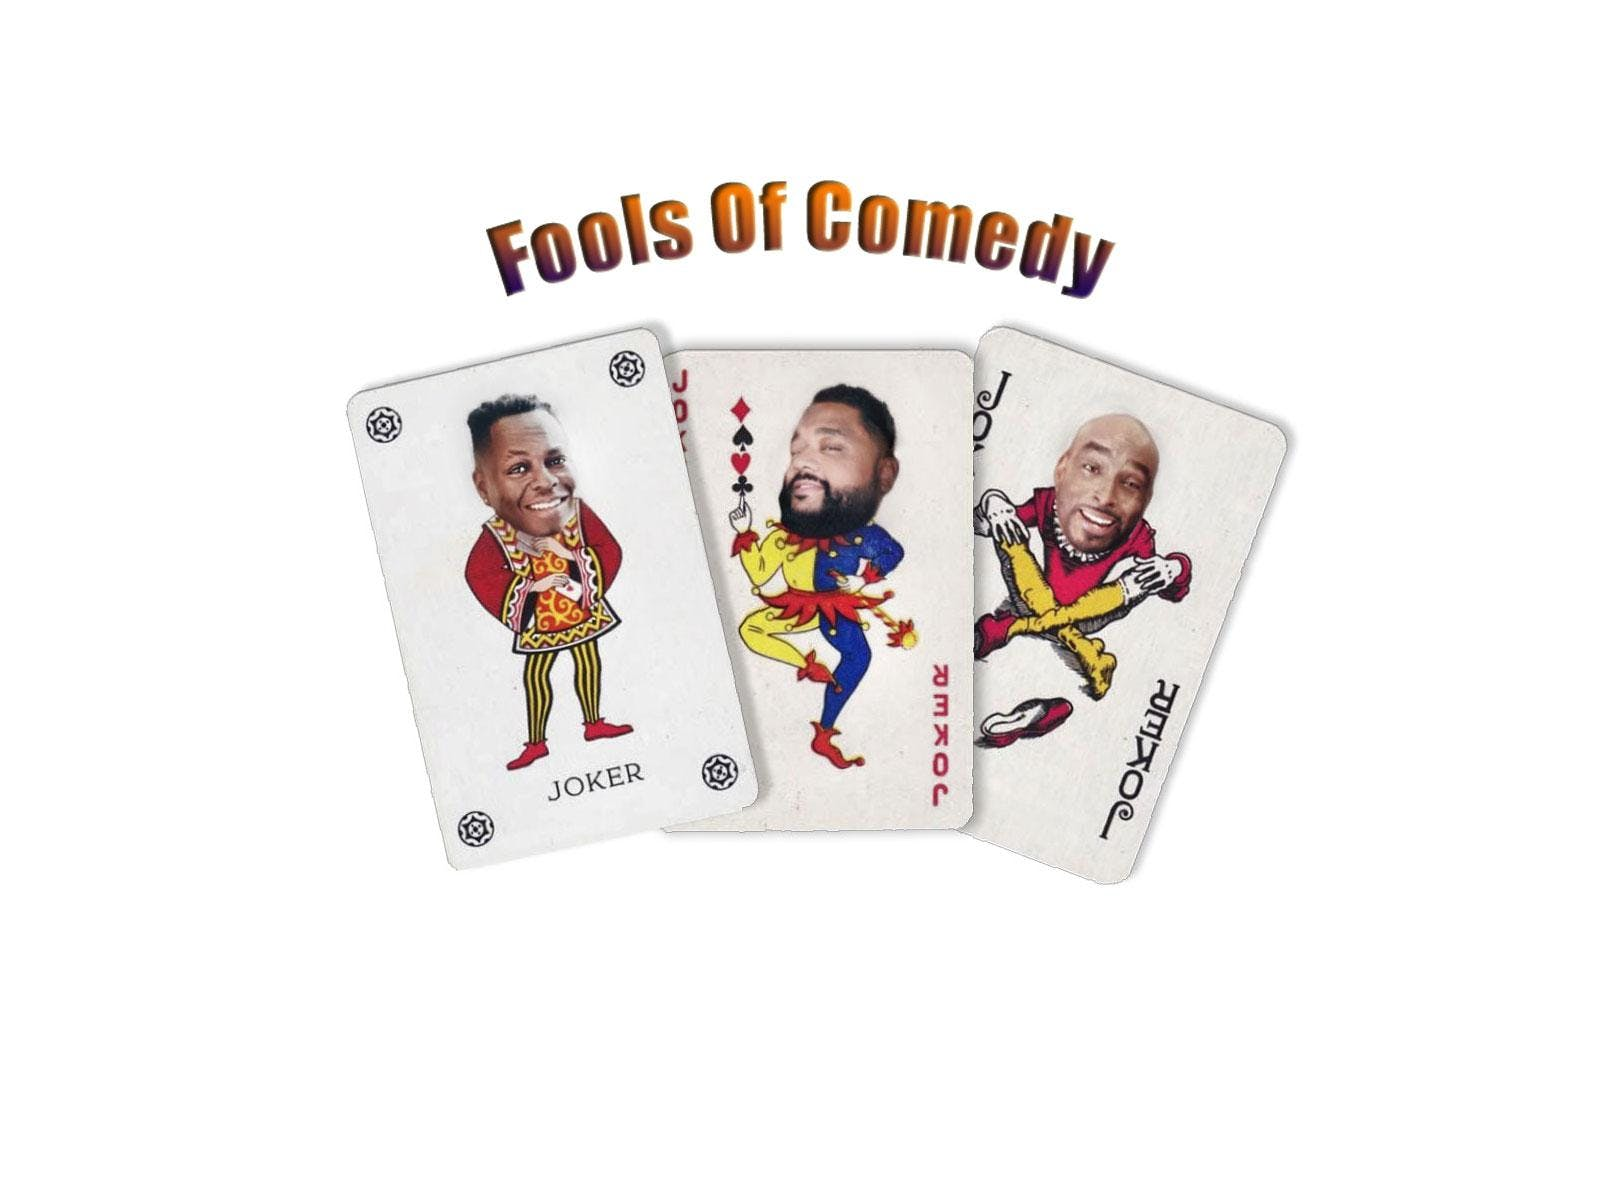 FREE TICKETS @ STANDUP LIVE PHOENIX FOOLS OF COMEDY